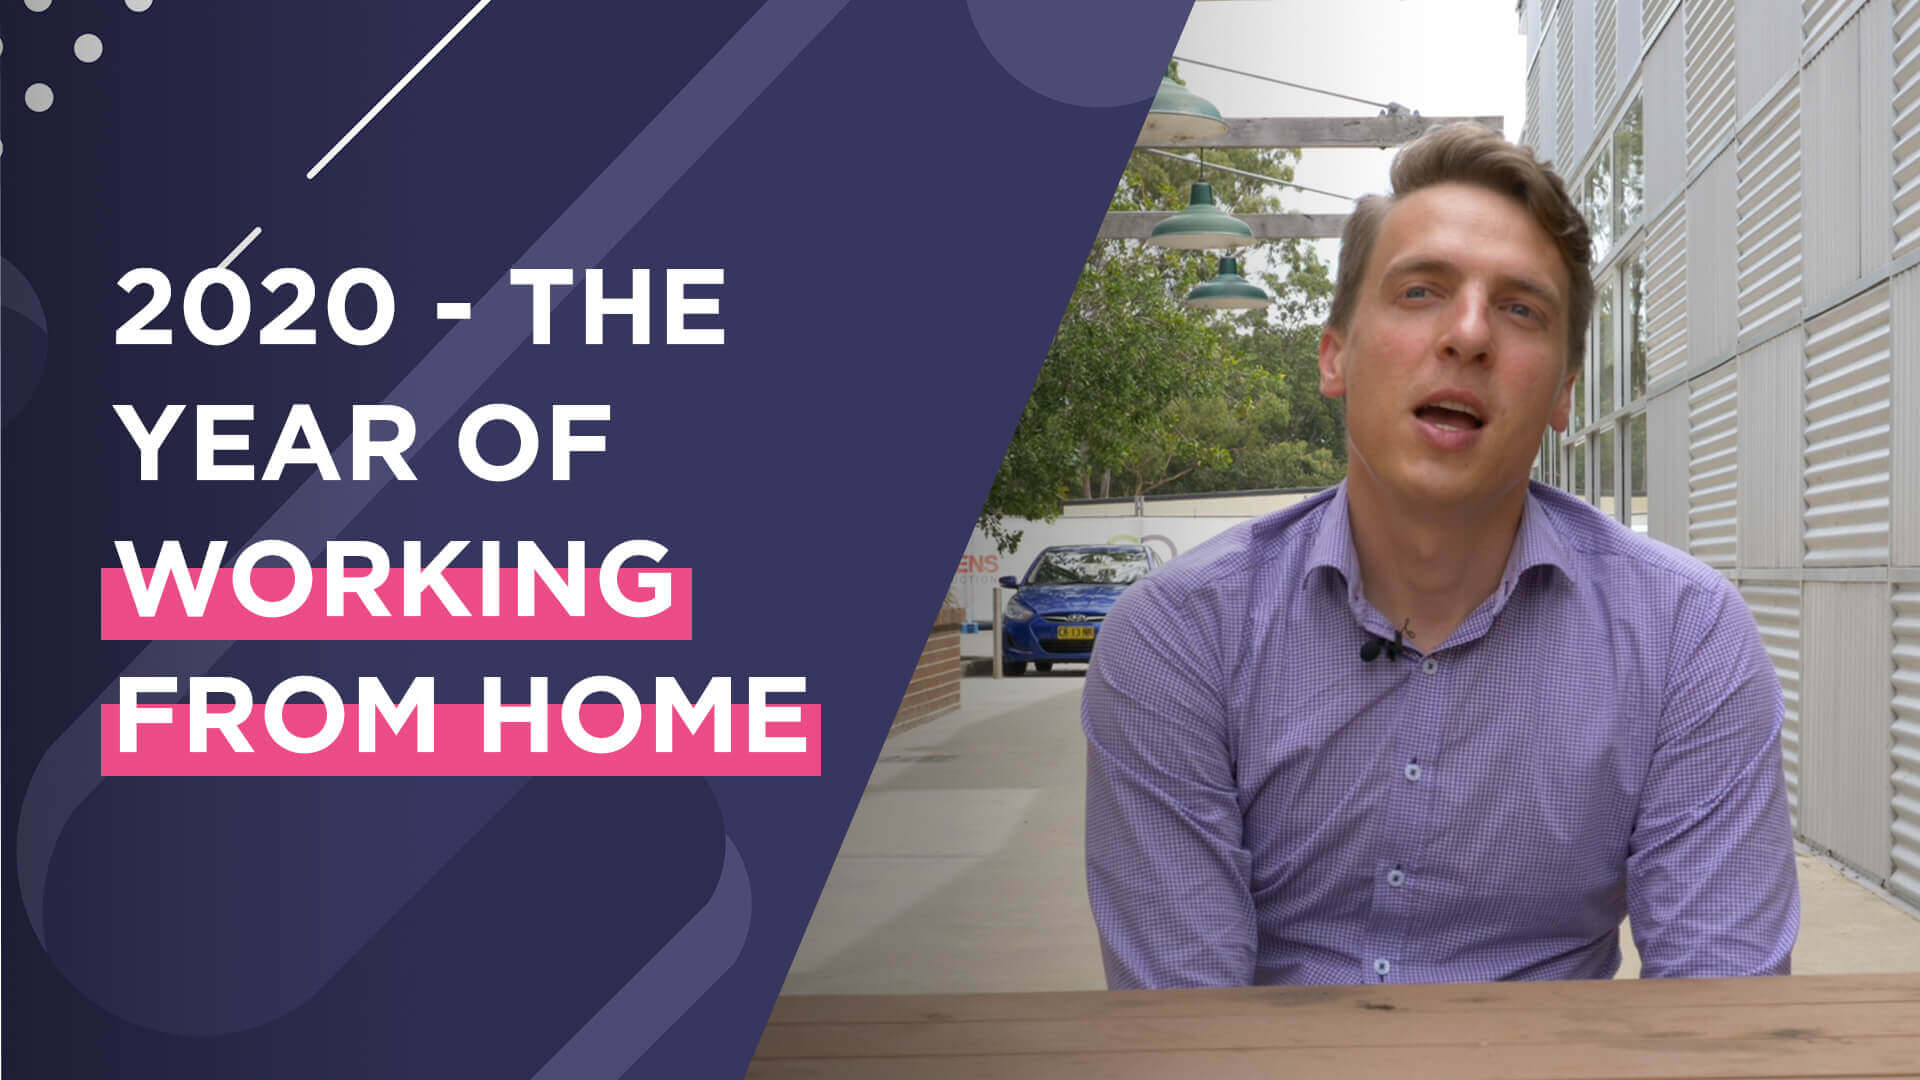 2020 - The year of working from home